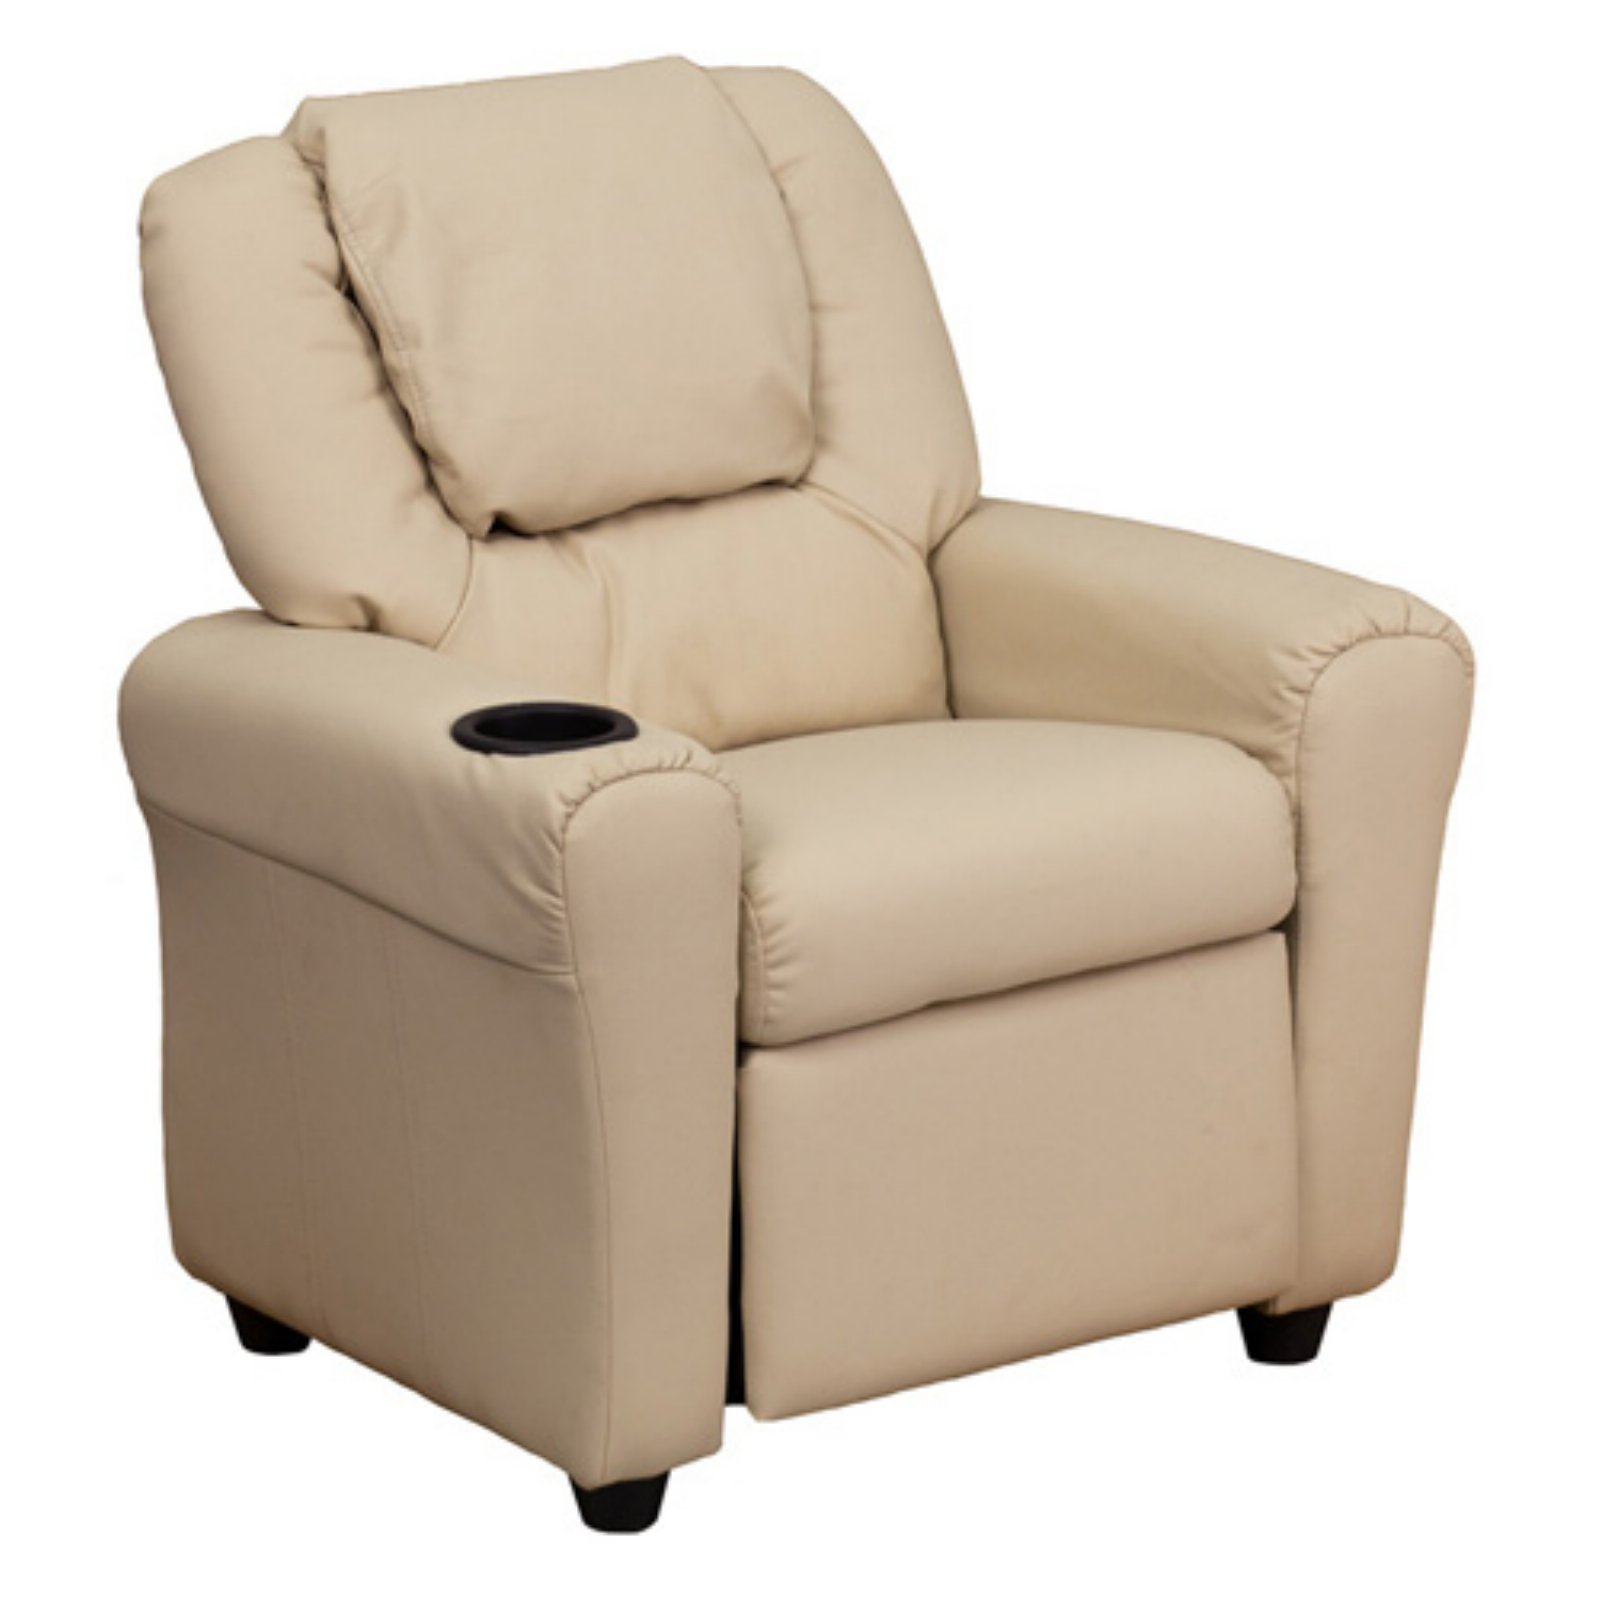 Green Kids Recliner